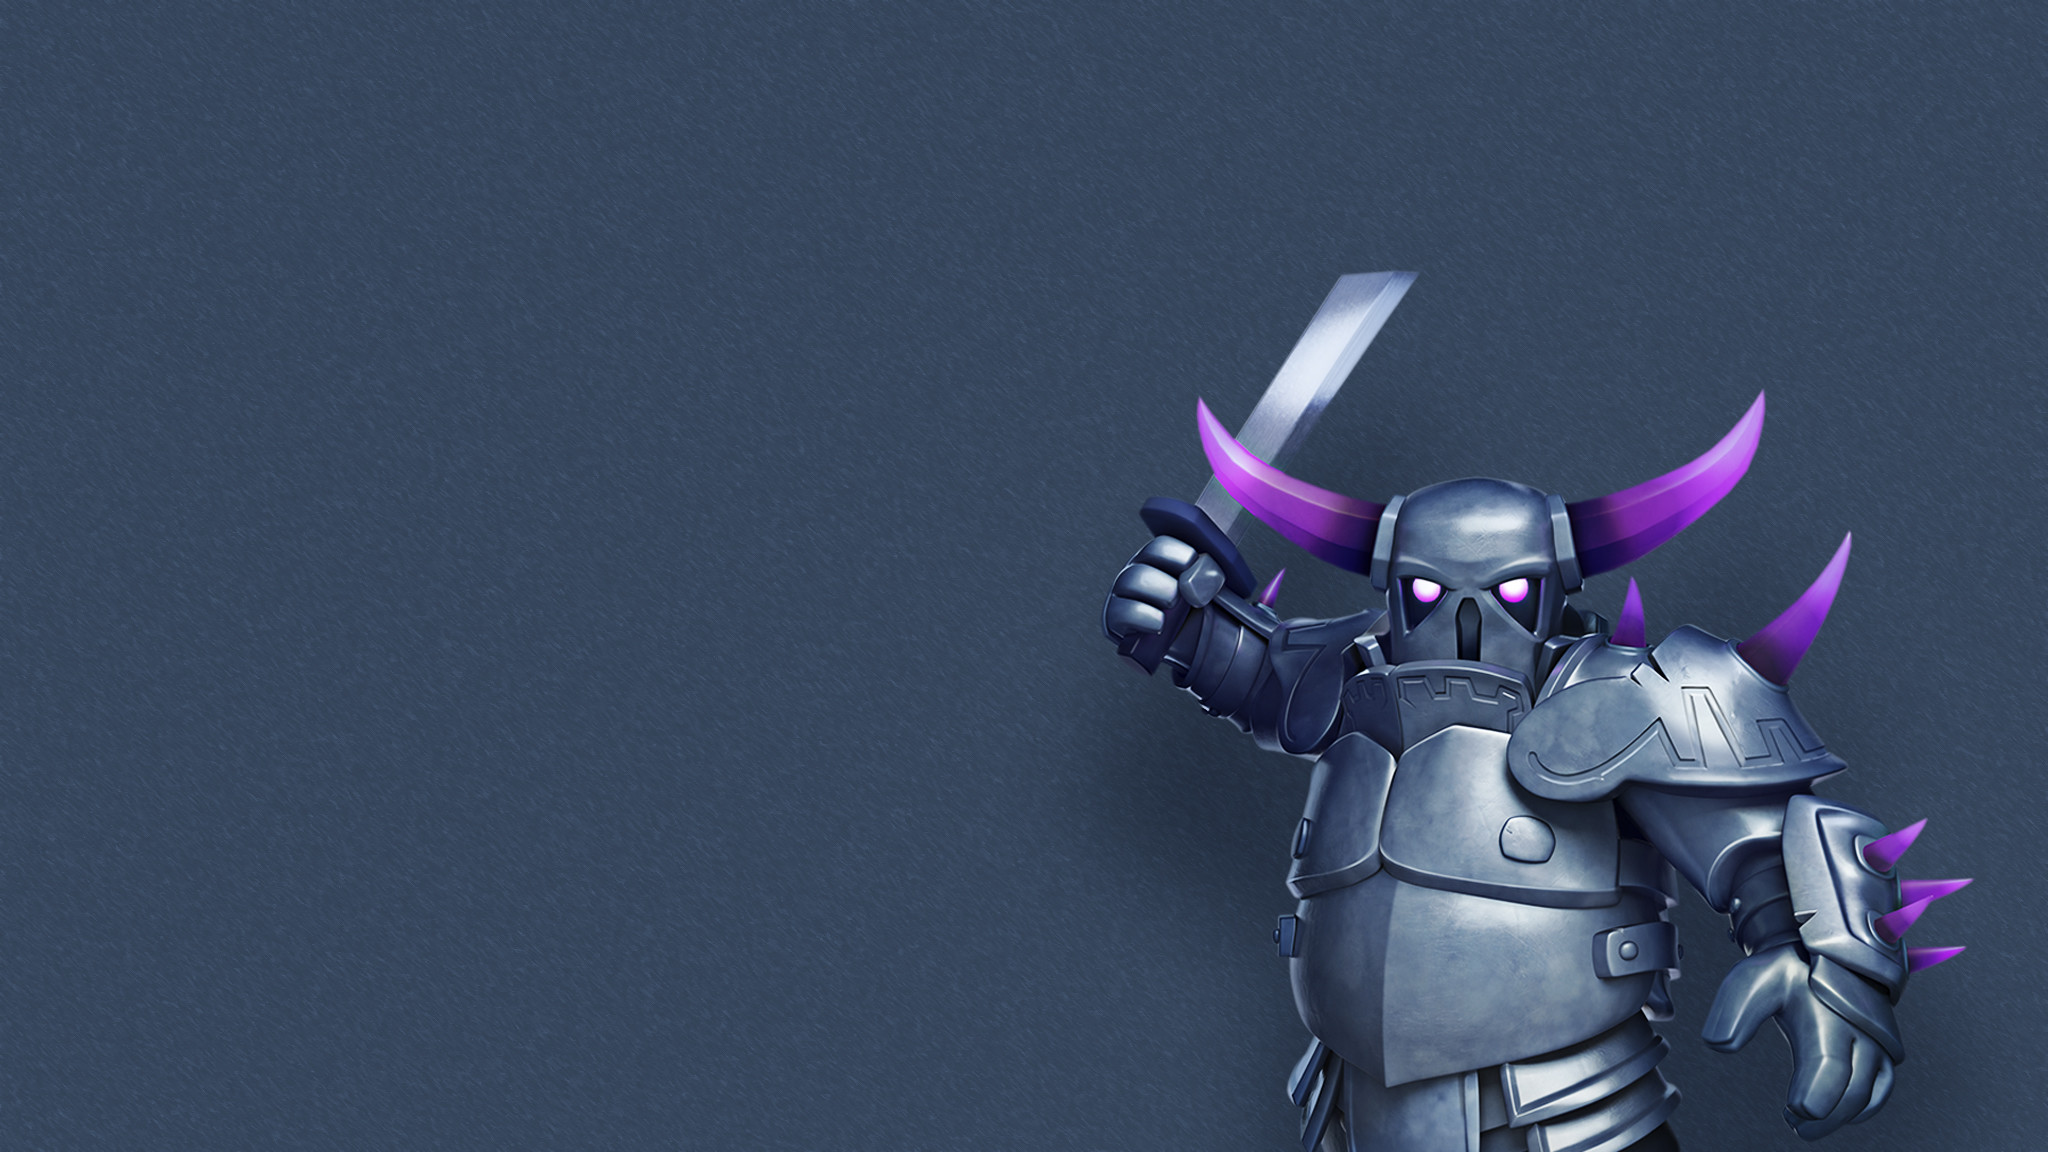 2048x1152 Pekka Clash Of Clans wallpaper